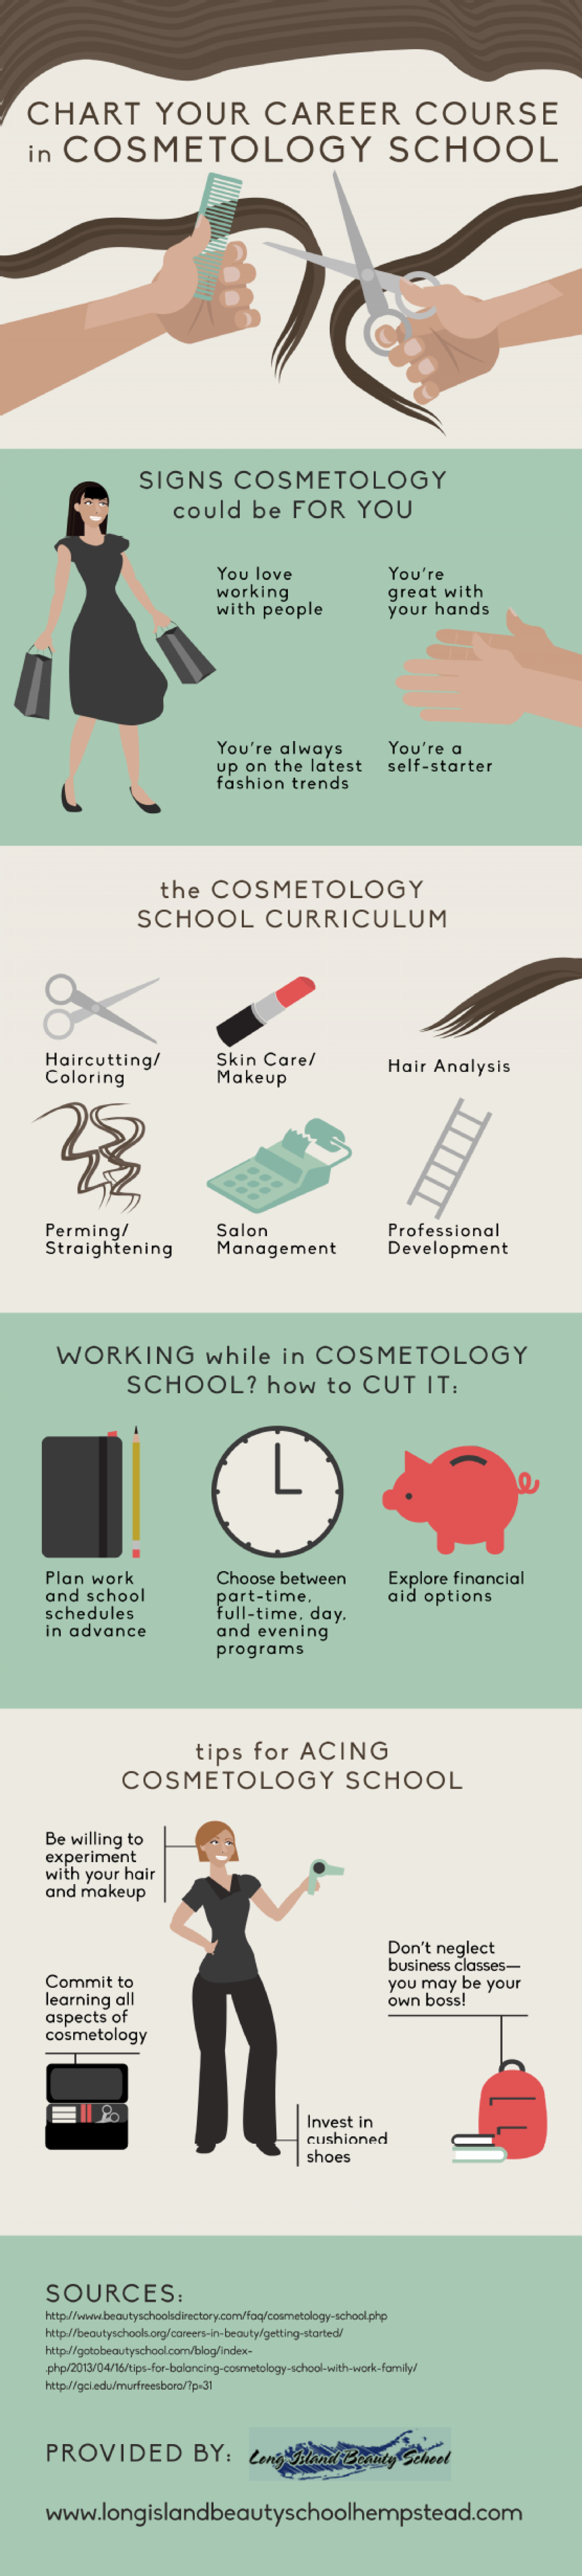 Chart Your Career Course in Cosmetology School  Infographic